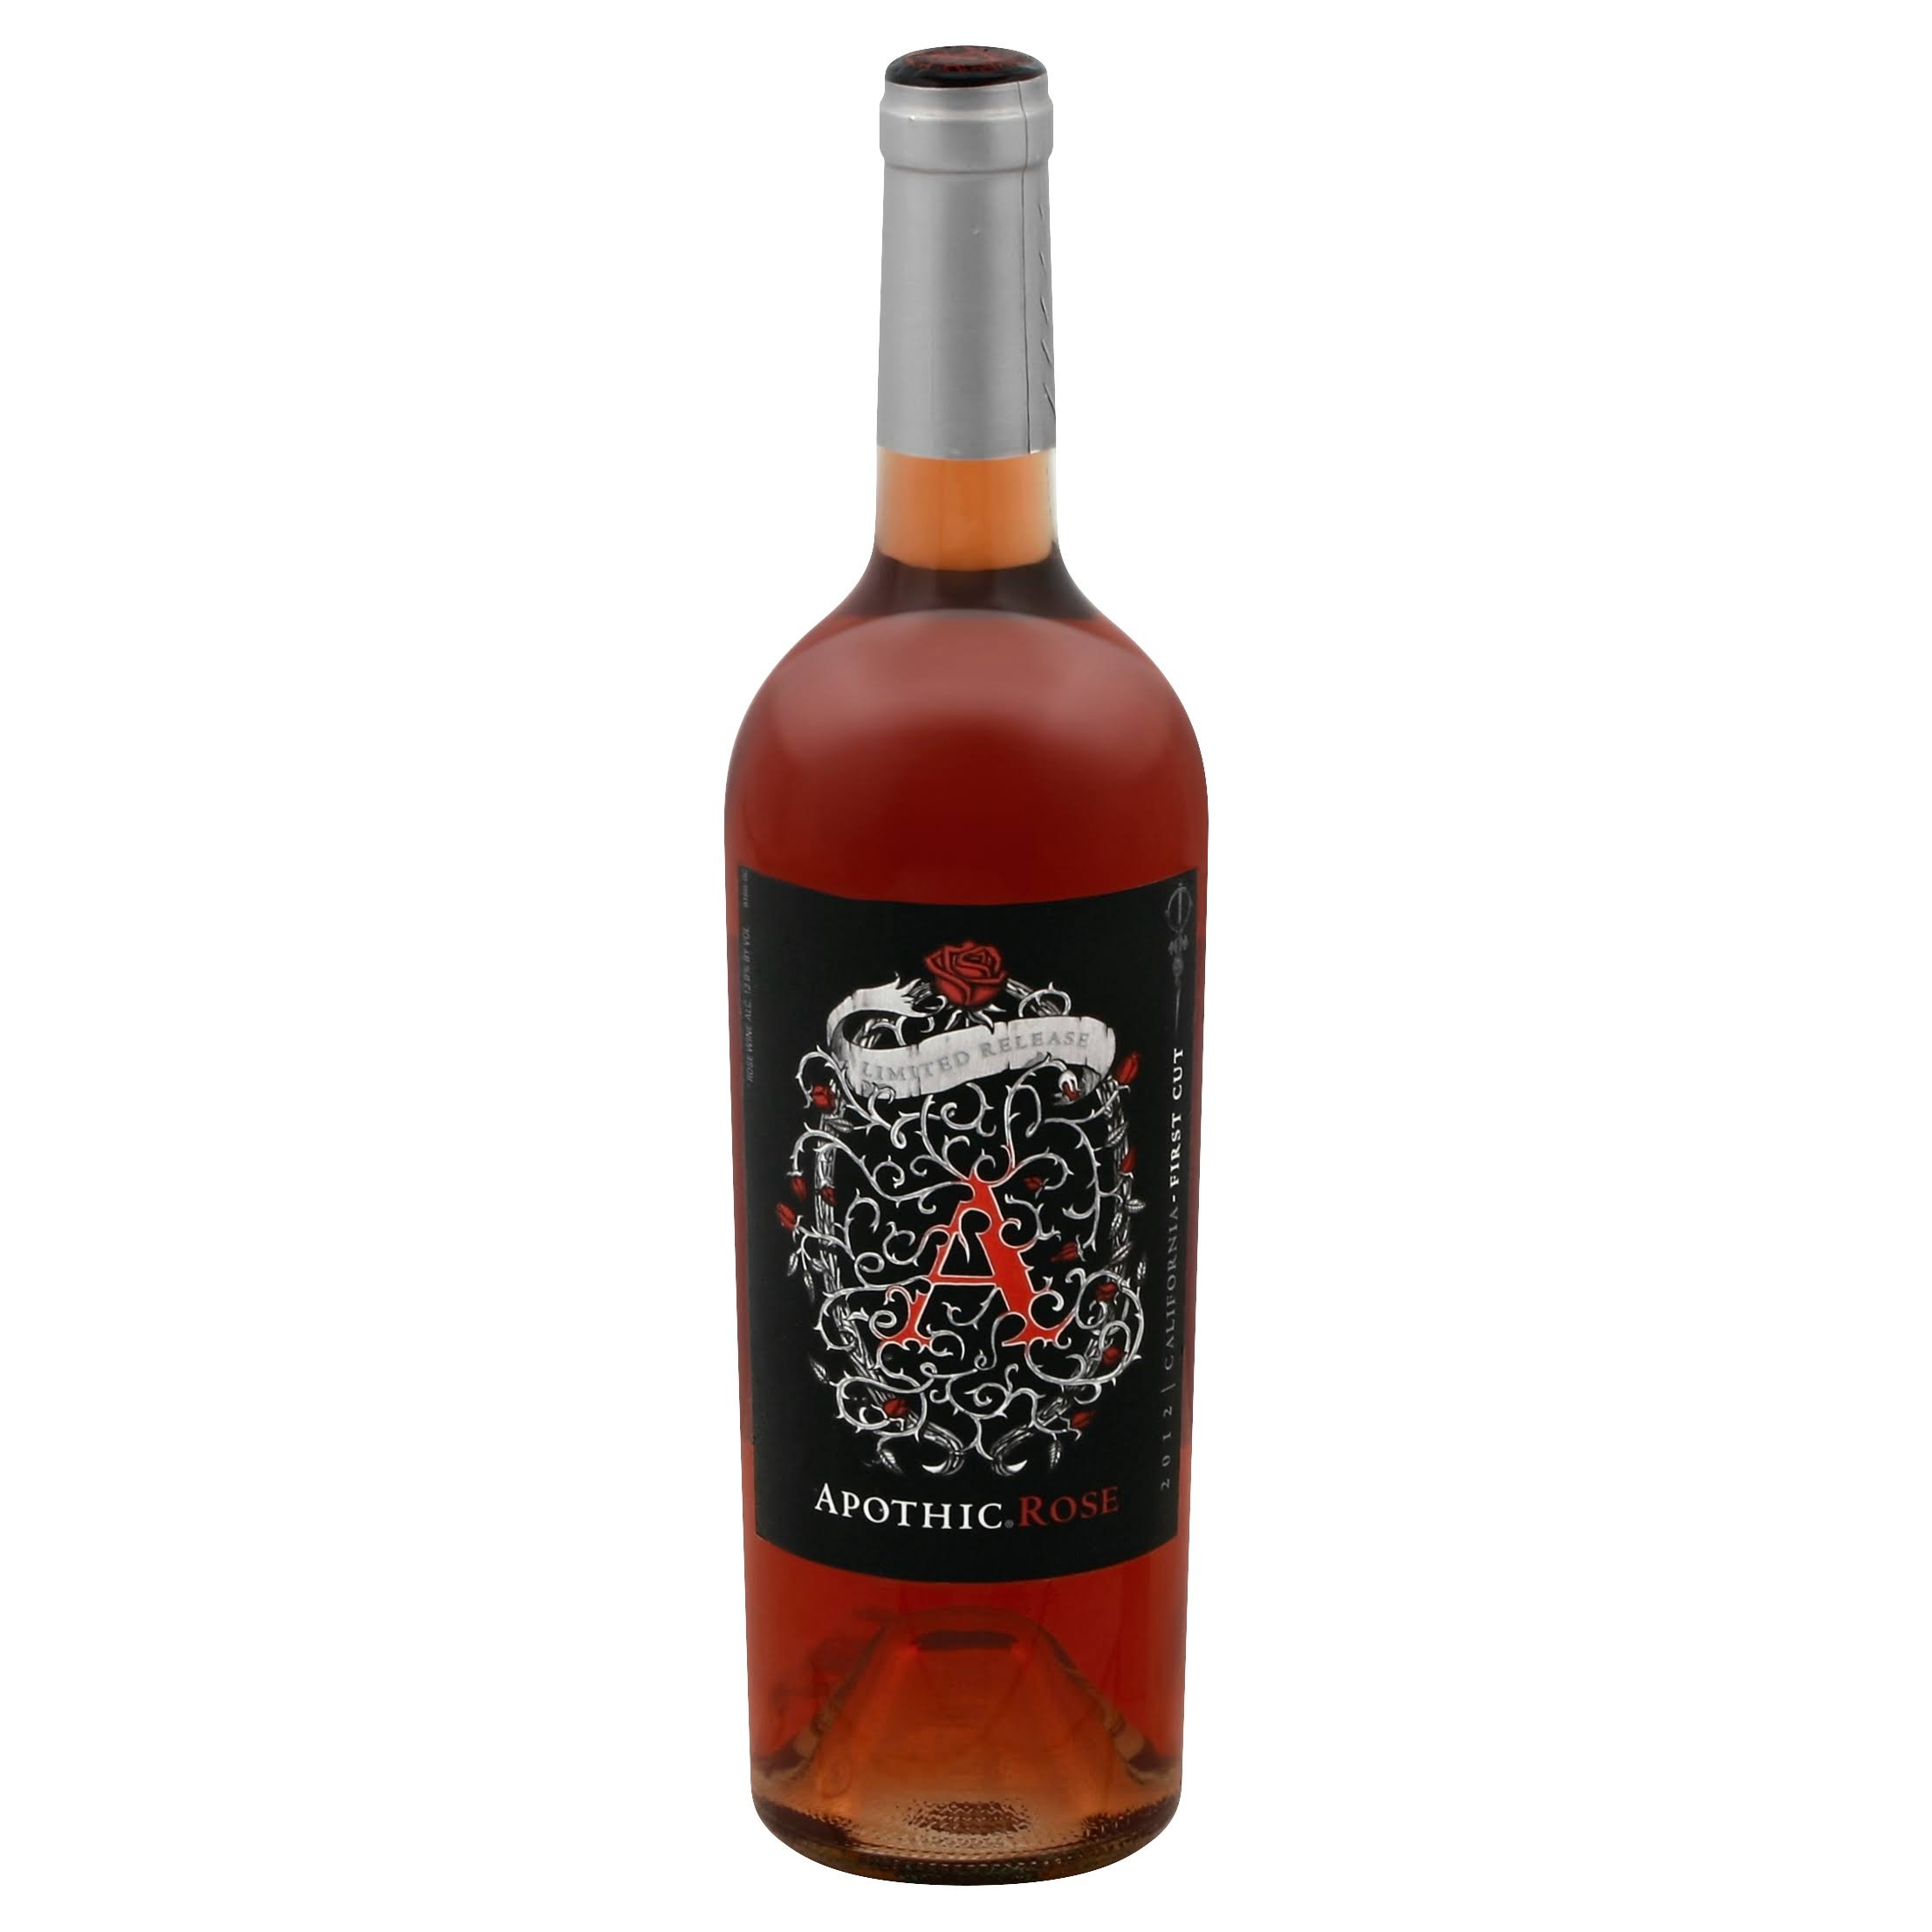 Apothic Rose Limited Release Wine, Sonoma County (Vintage Varies) - 750 ml bottle